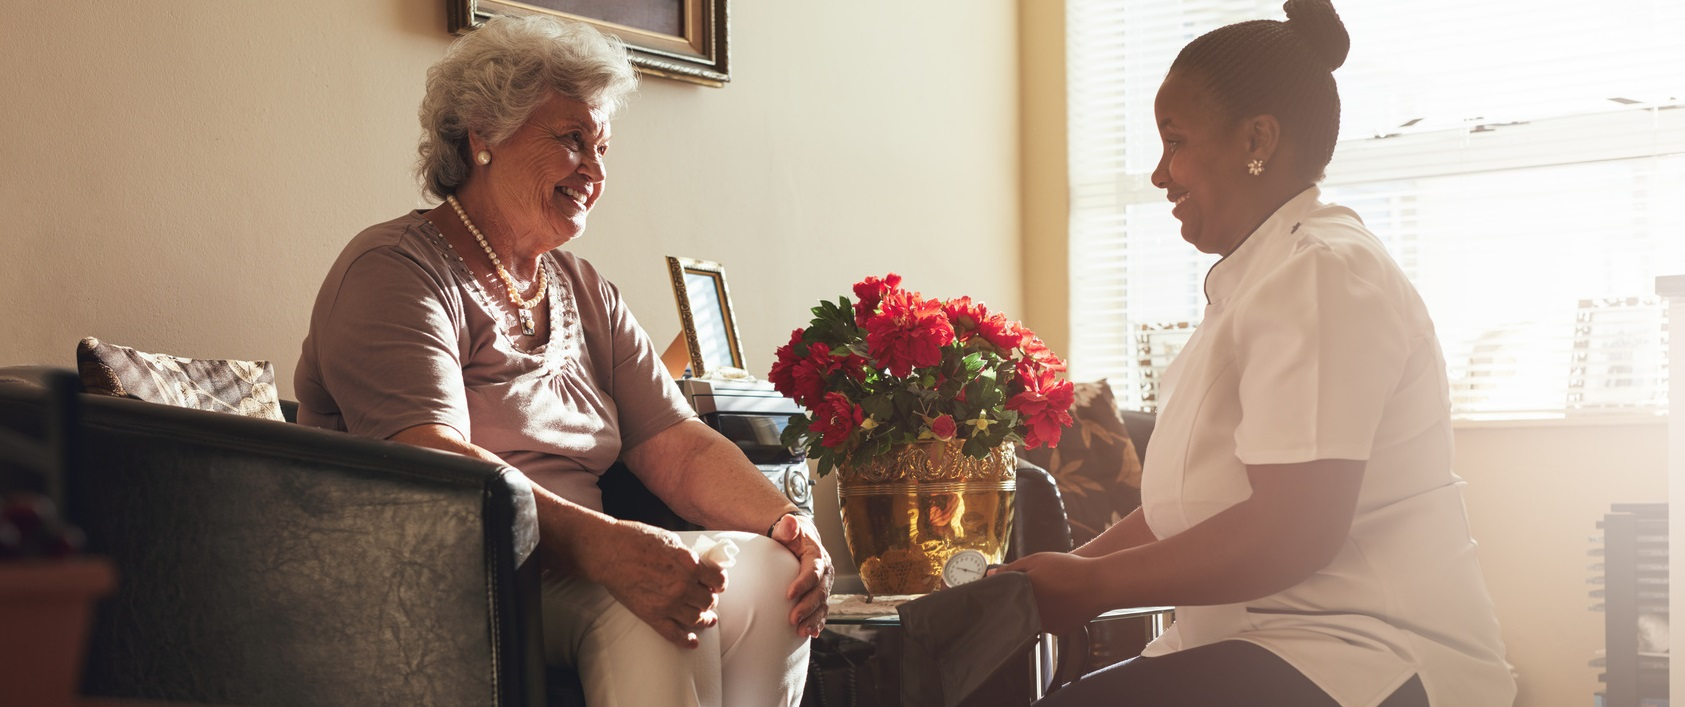 Home Health Aide with Woman